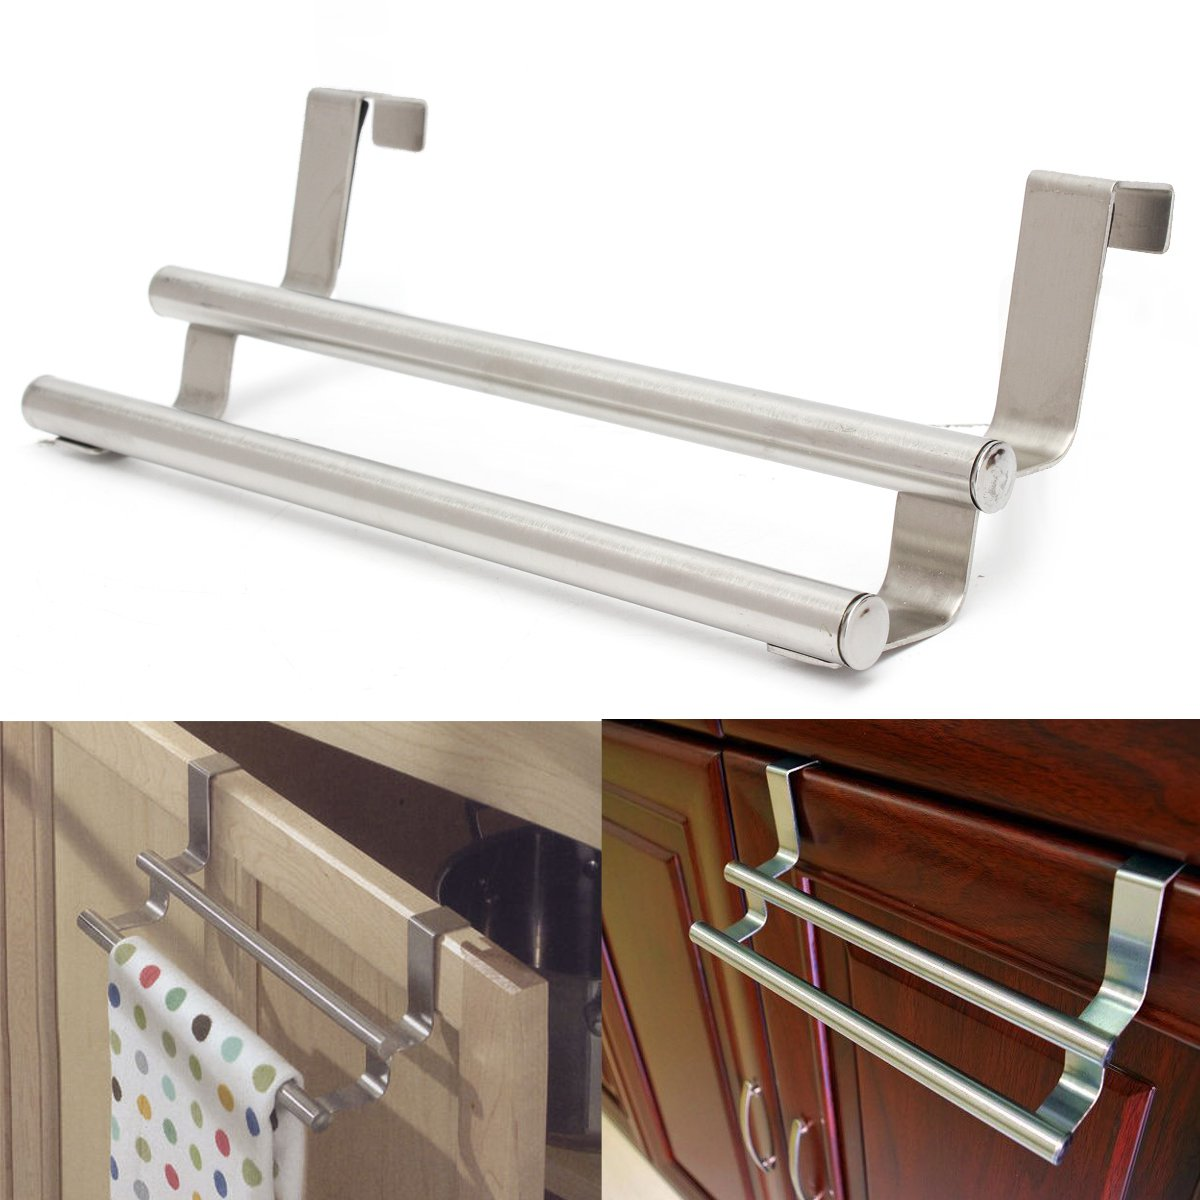 Stainless Steel Double Rail Towel Storage Bar Over The Door Cabinet ...